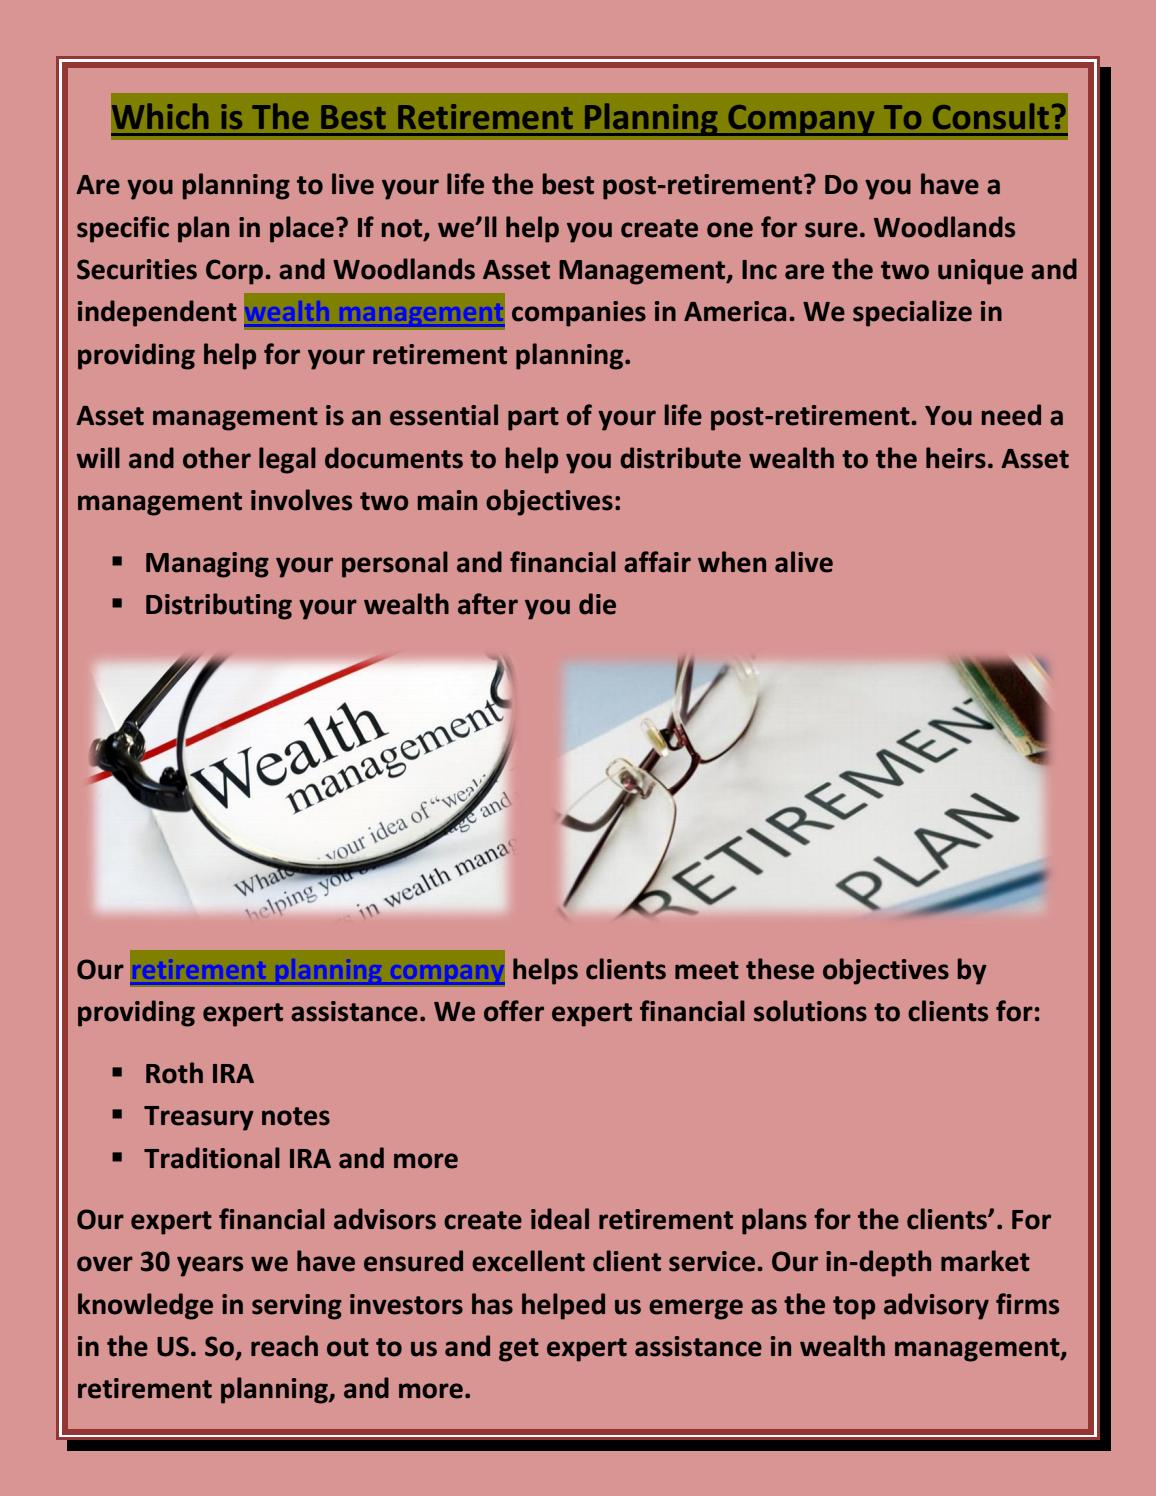 Which is The Best Retirement Planning Company To Consult? by